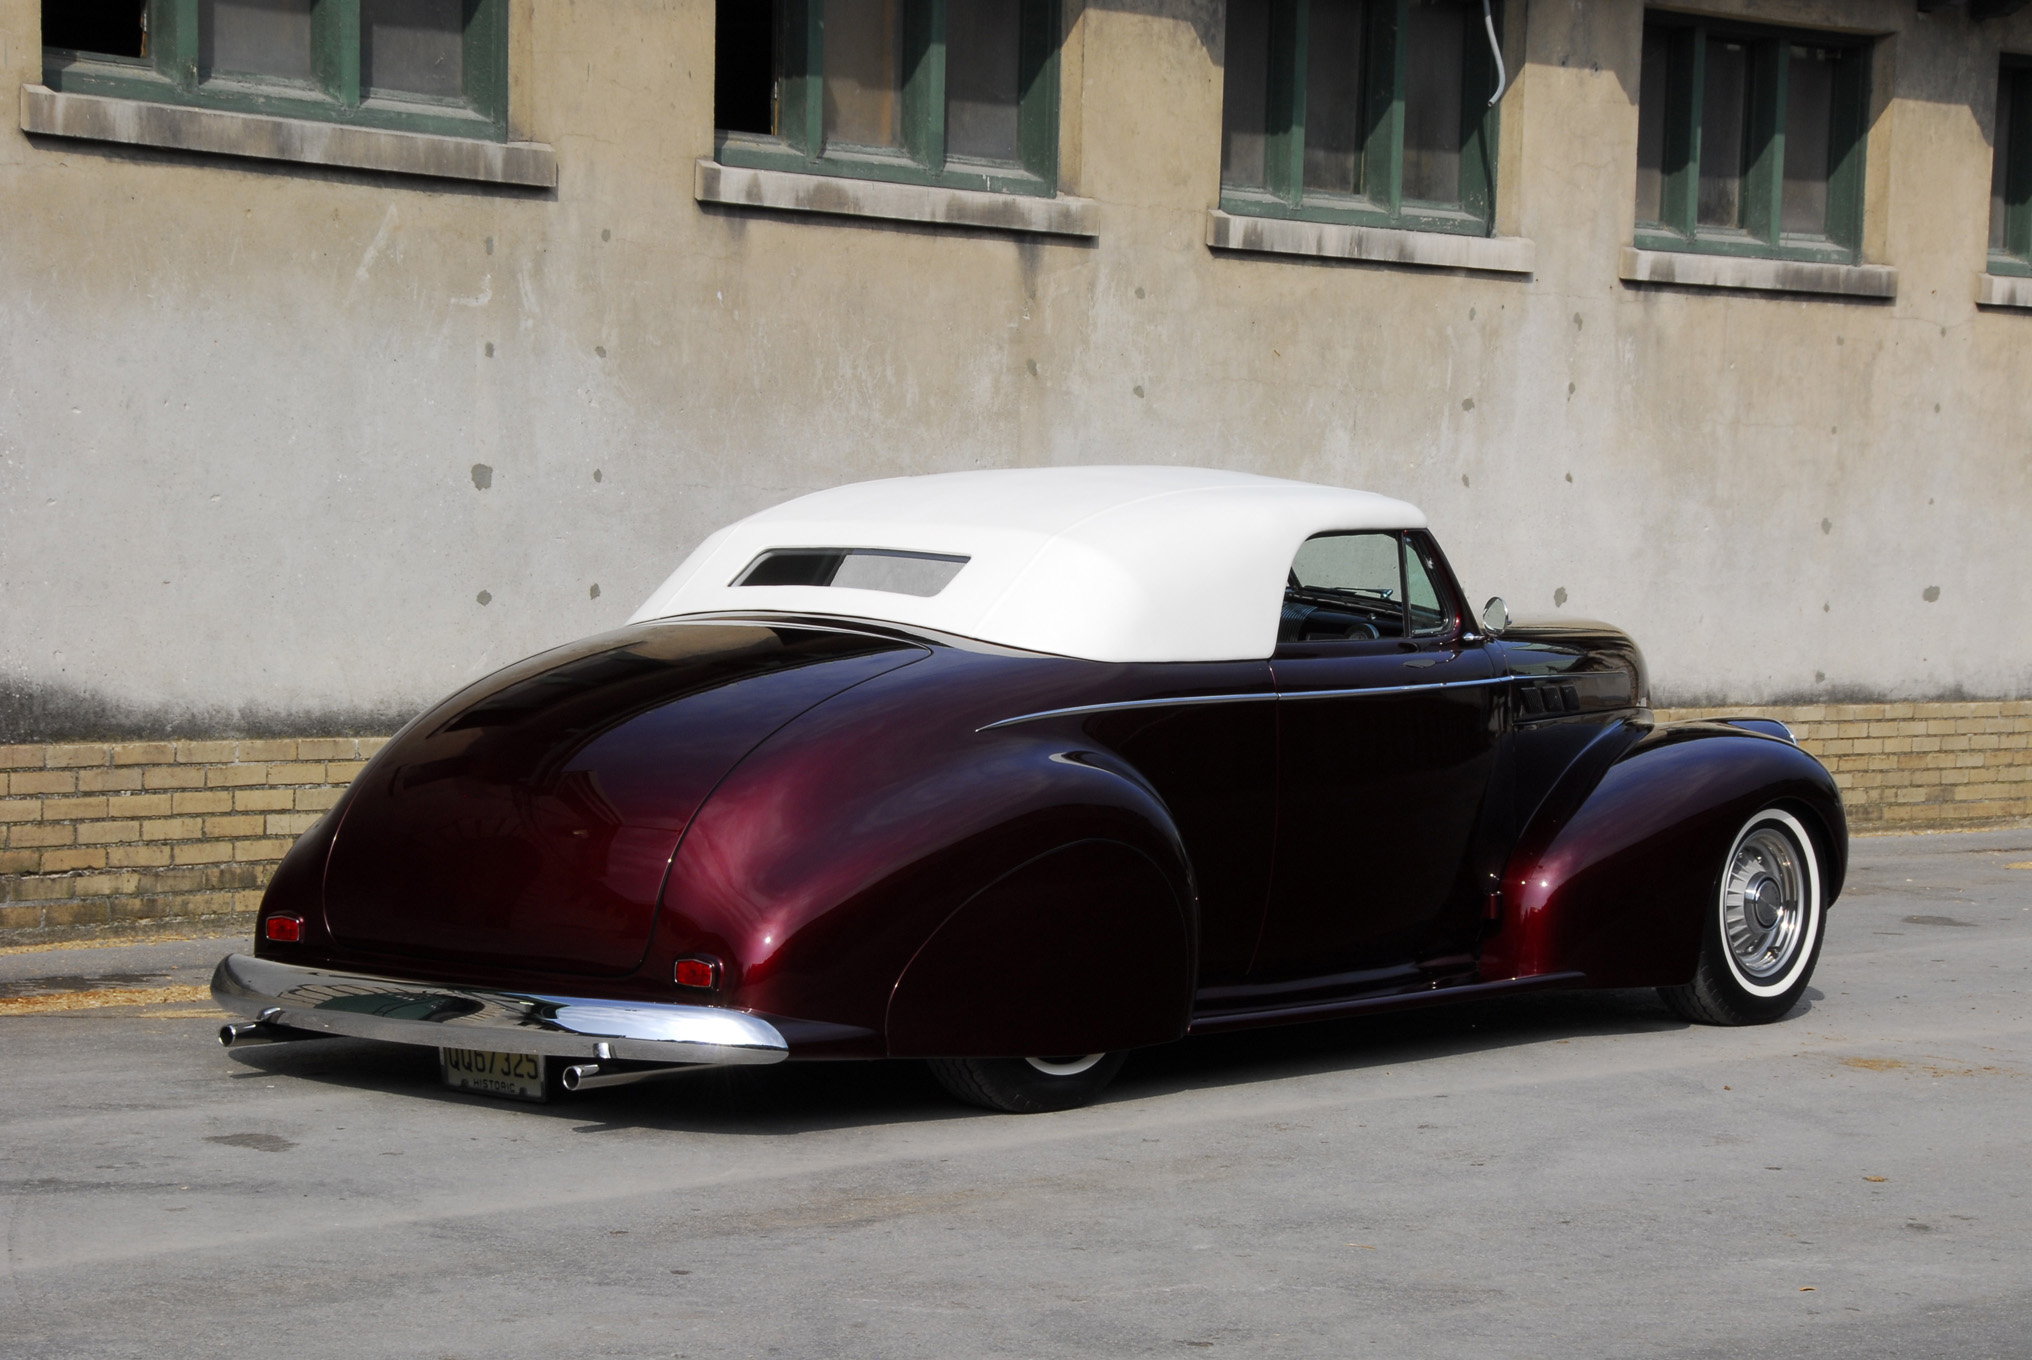 From the rear the car looks like it's melting into the pavement, thanks to a combination of RideTech 'bags, flowing rear fenders complemented by recessed skirts, and a lowered 1946 Canadian Pontiac rear bumper.